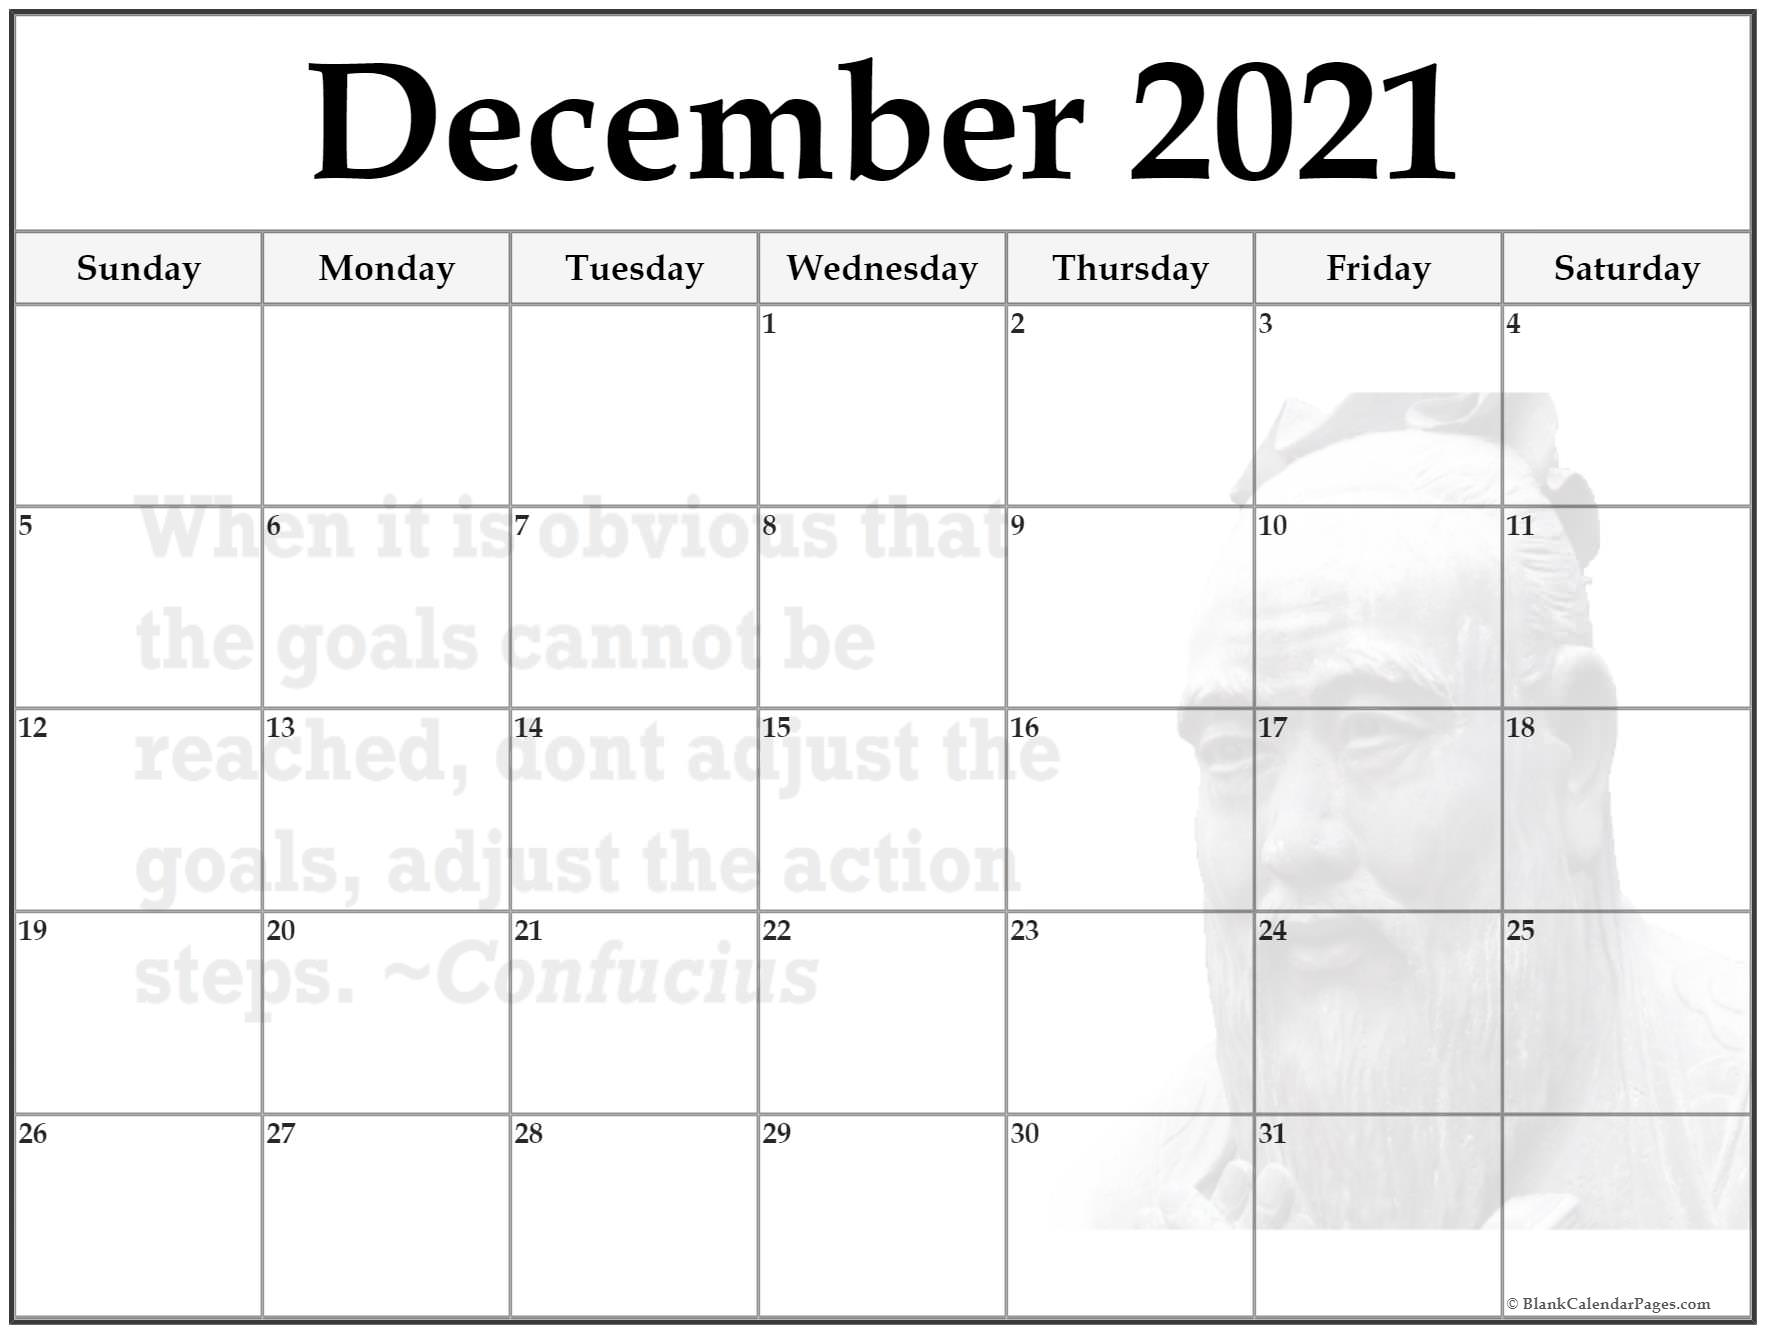 December 2021 monthly calendar template. When it is obvious that the goals cannot be reached, don't adjust the goals, adjust the action steps ~Confucius